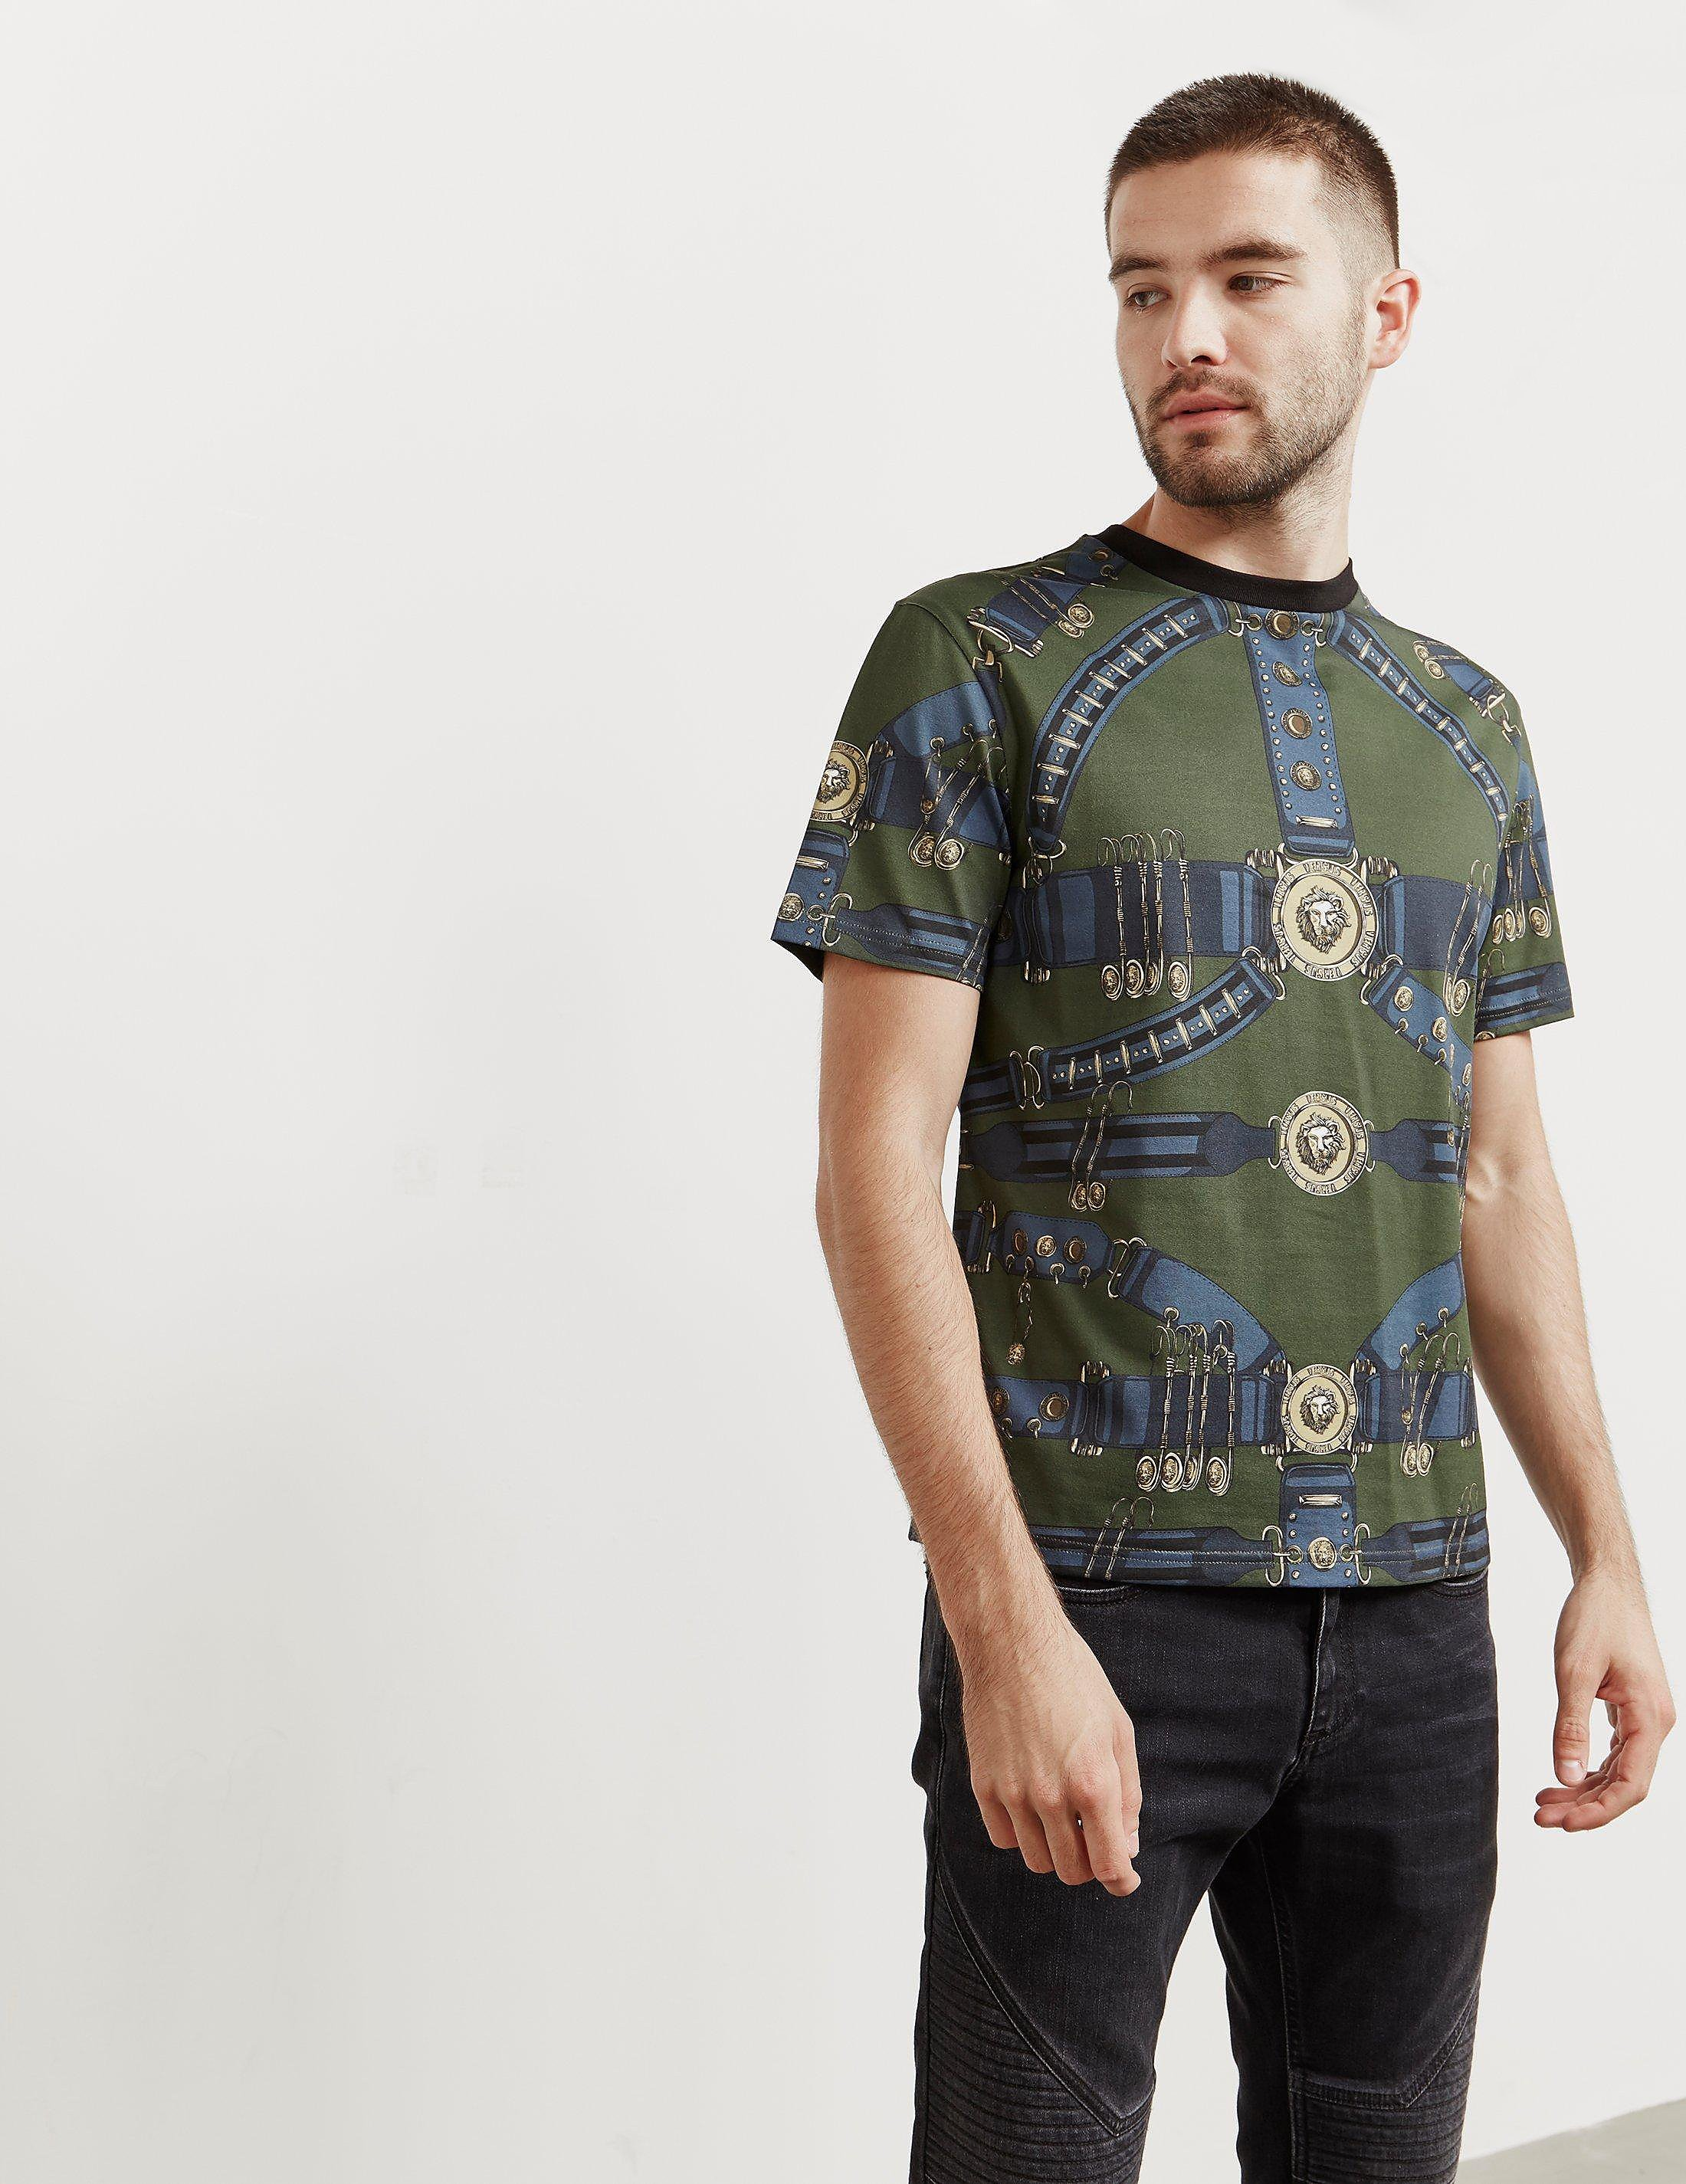 d8e2a717 Mens Versus Versace Printed Short Sleeve T-Shirt - Online Exclusive Green,  Green